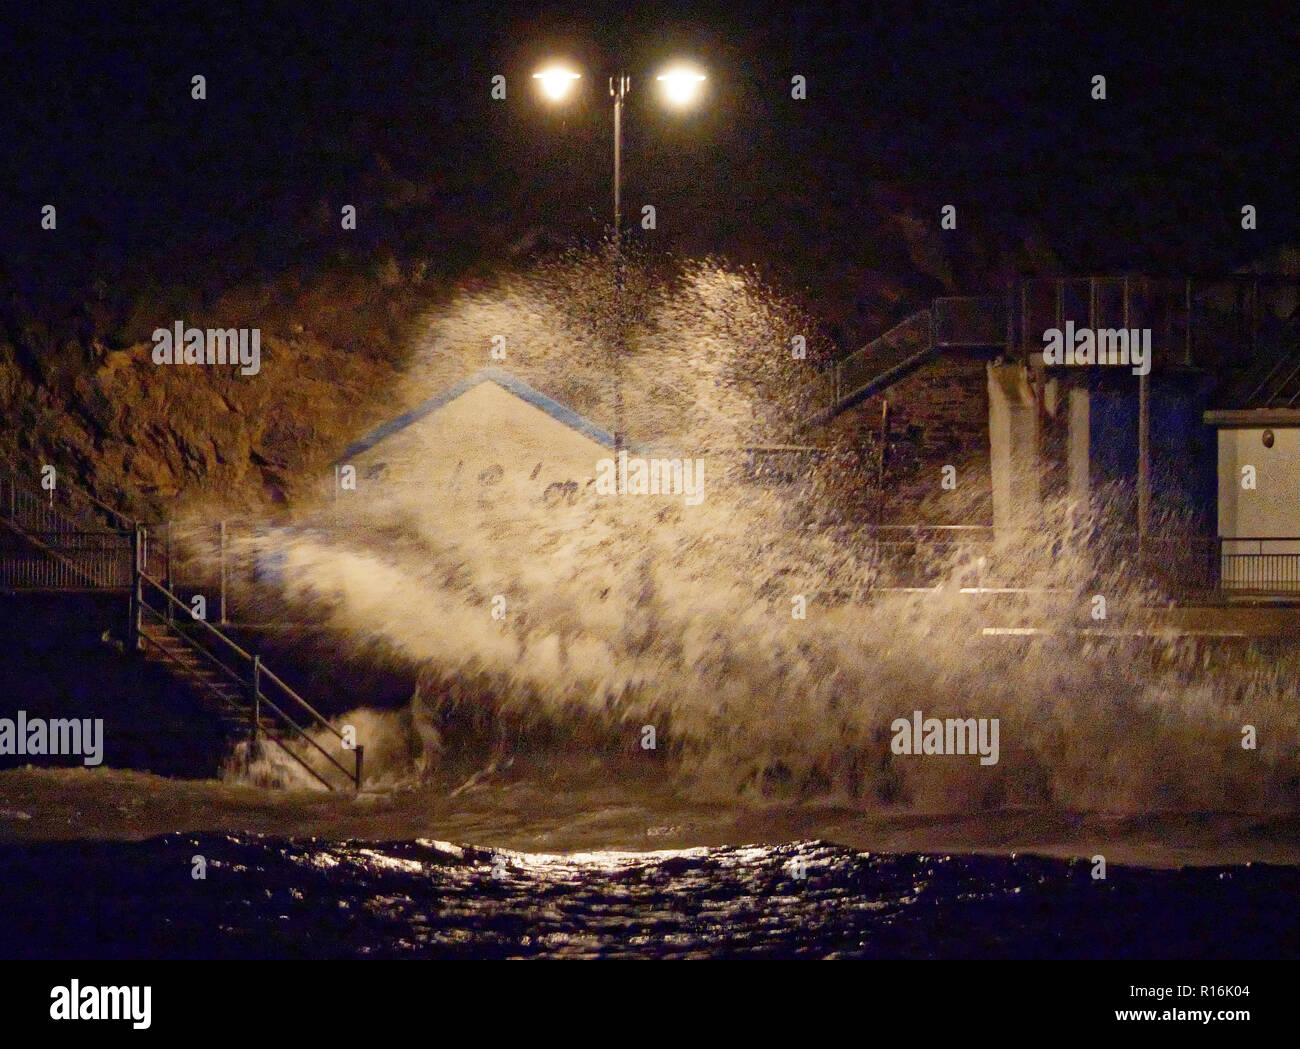 Newquay, Cornwall, UK. 9th Nov, 2018. UK Weather. Storms hit West country. Gales and huge seas hit Newquay esplanade. Credit: Robert Taylor/Alamy Live News - Stock Image